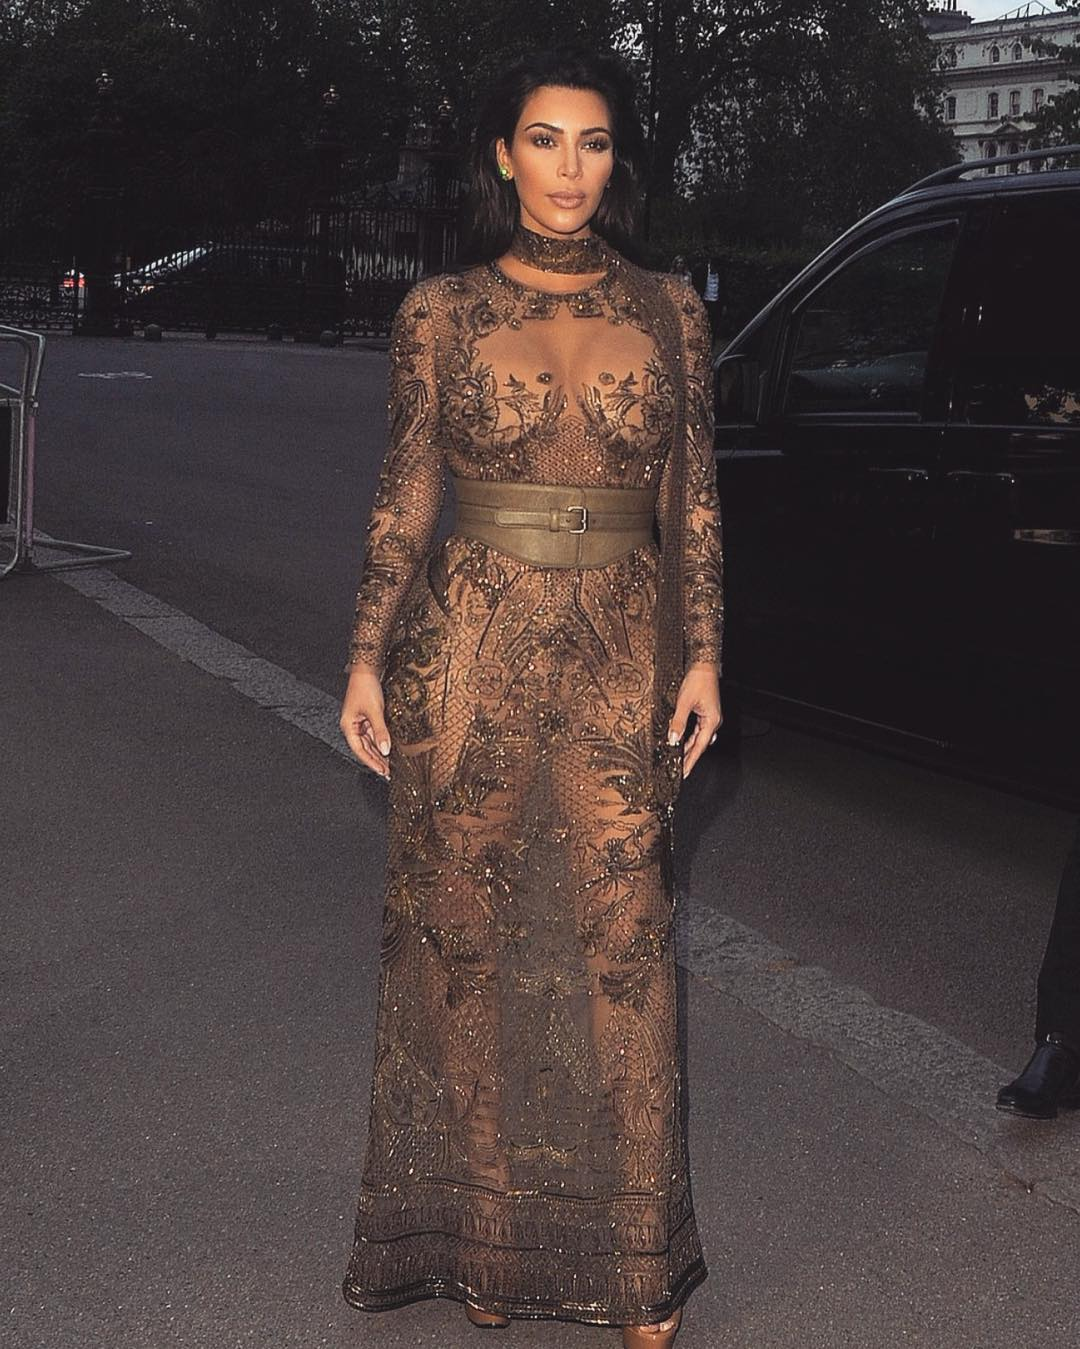 3b4d21693dd1b1db82e2a9435e93c723aaa79175 Kim Kardashian spoke about the diet, thanks to which kicked off 30 kilograms